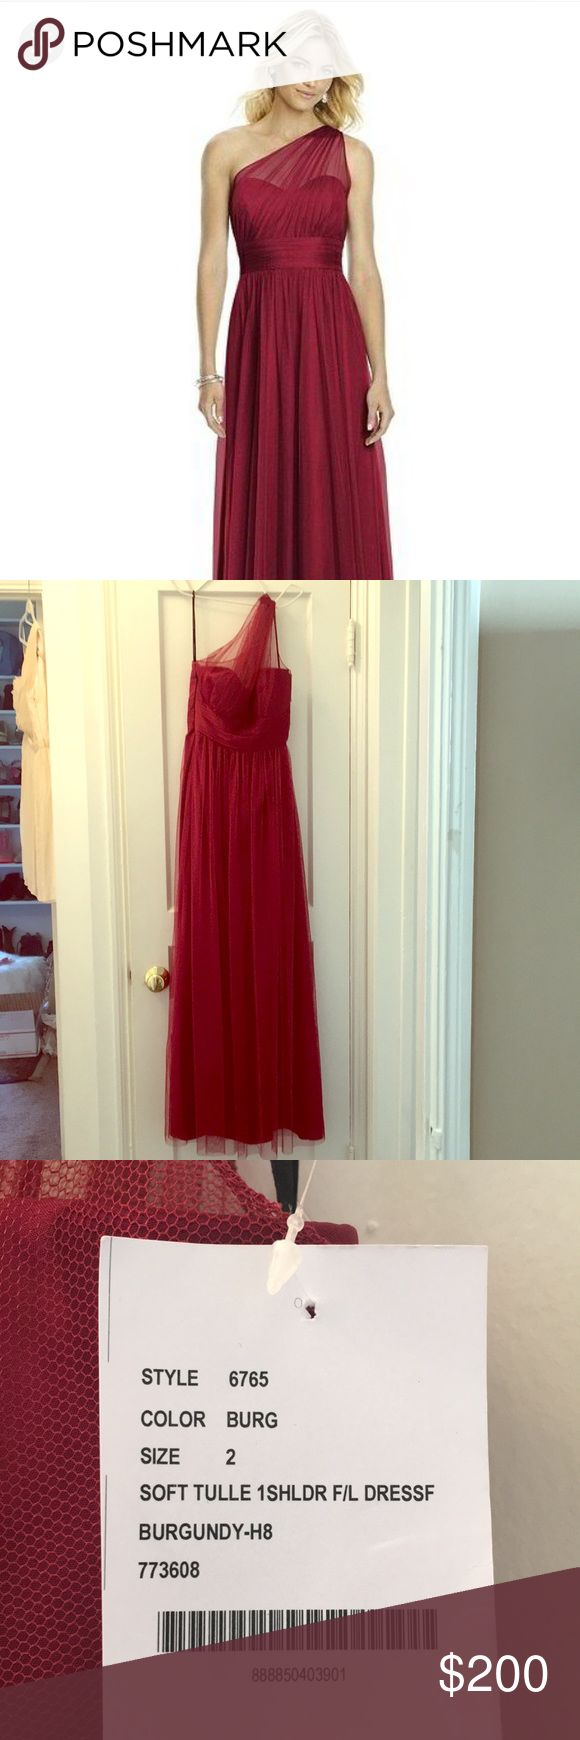 AFTER SIX gown from BELLA BRIDESMAIDS size 2 Dressy (After Six) - 6765 in tulle in burgundy New with tags No alterations After Six Dresses Wedding